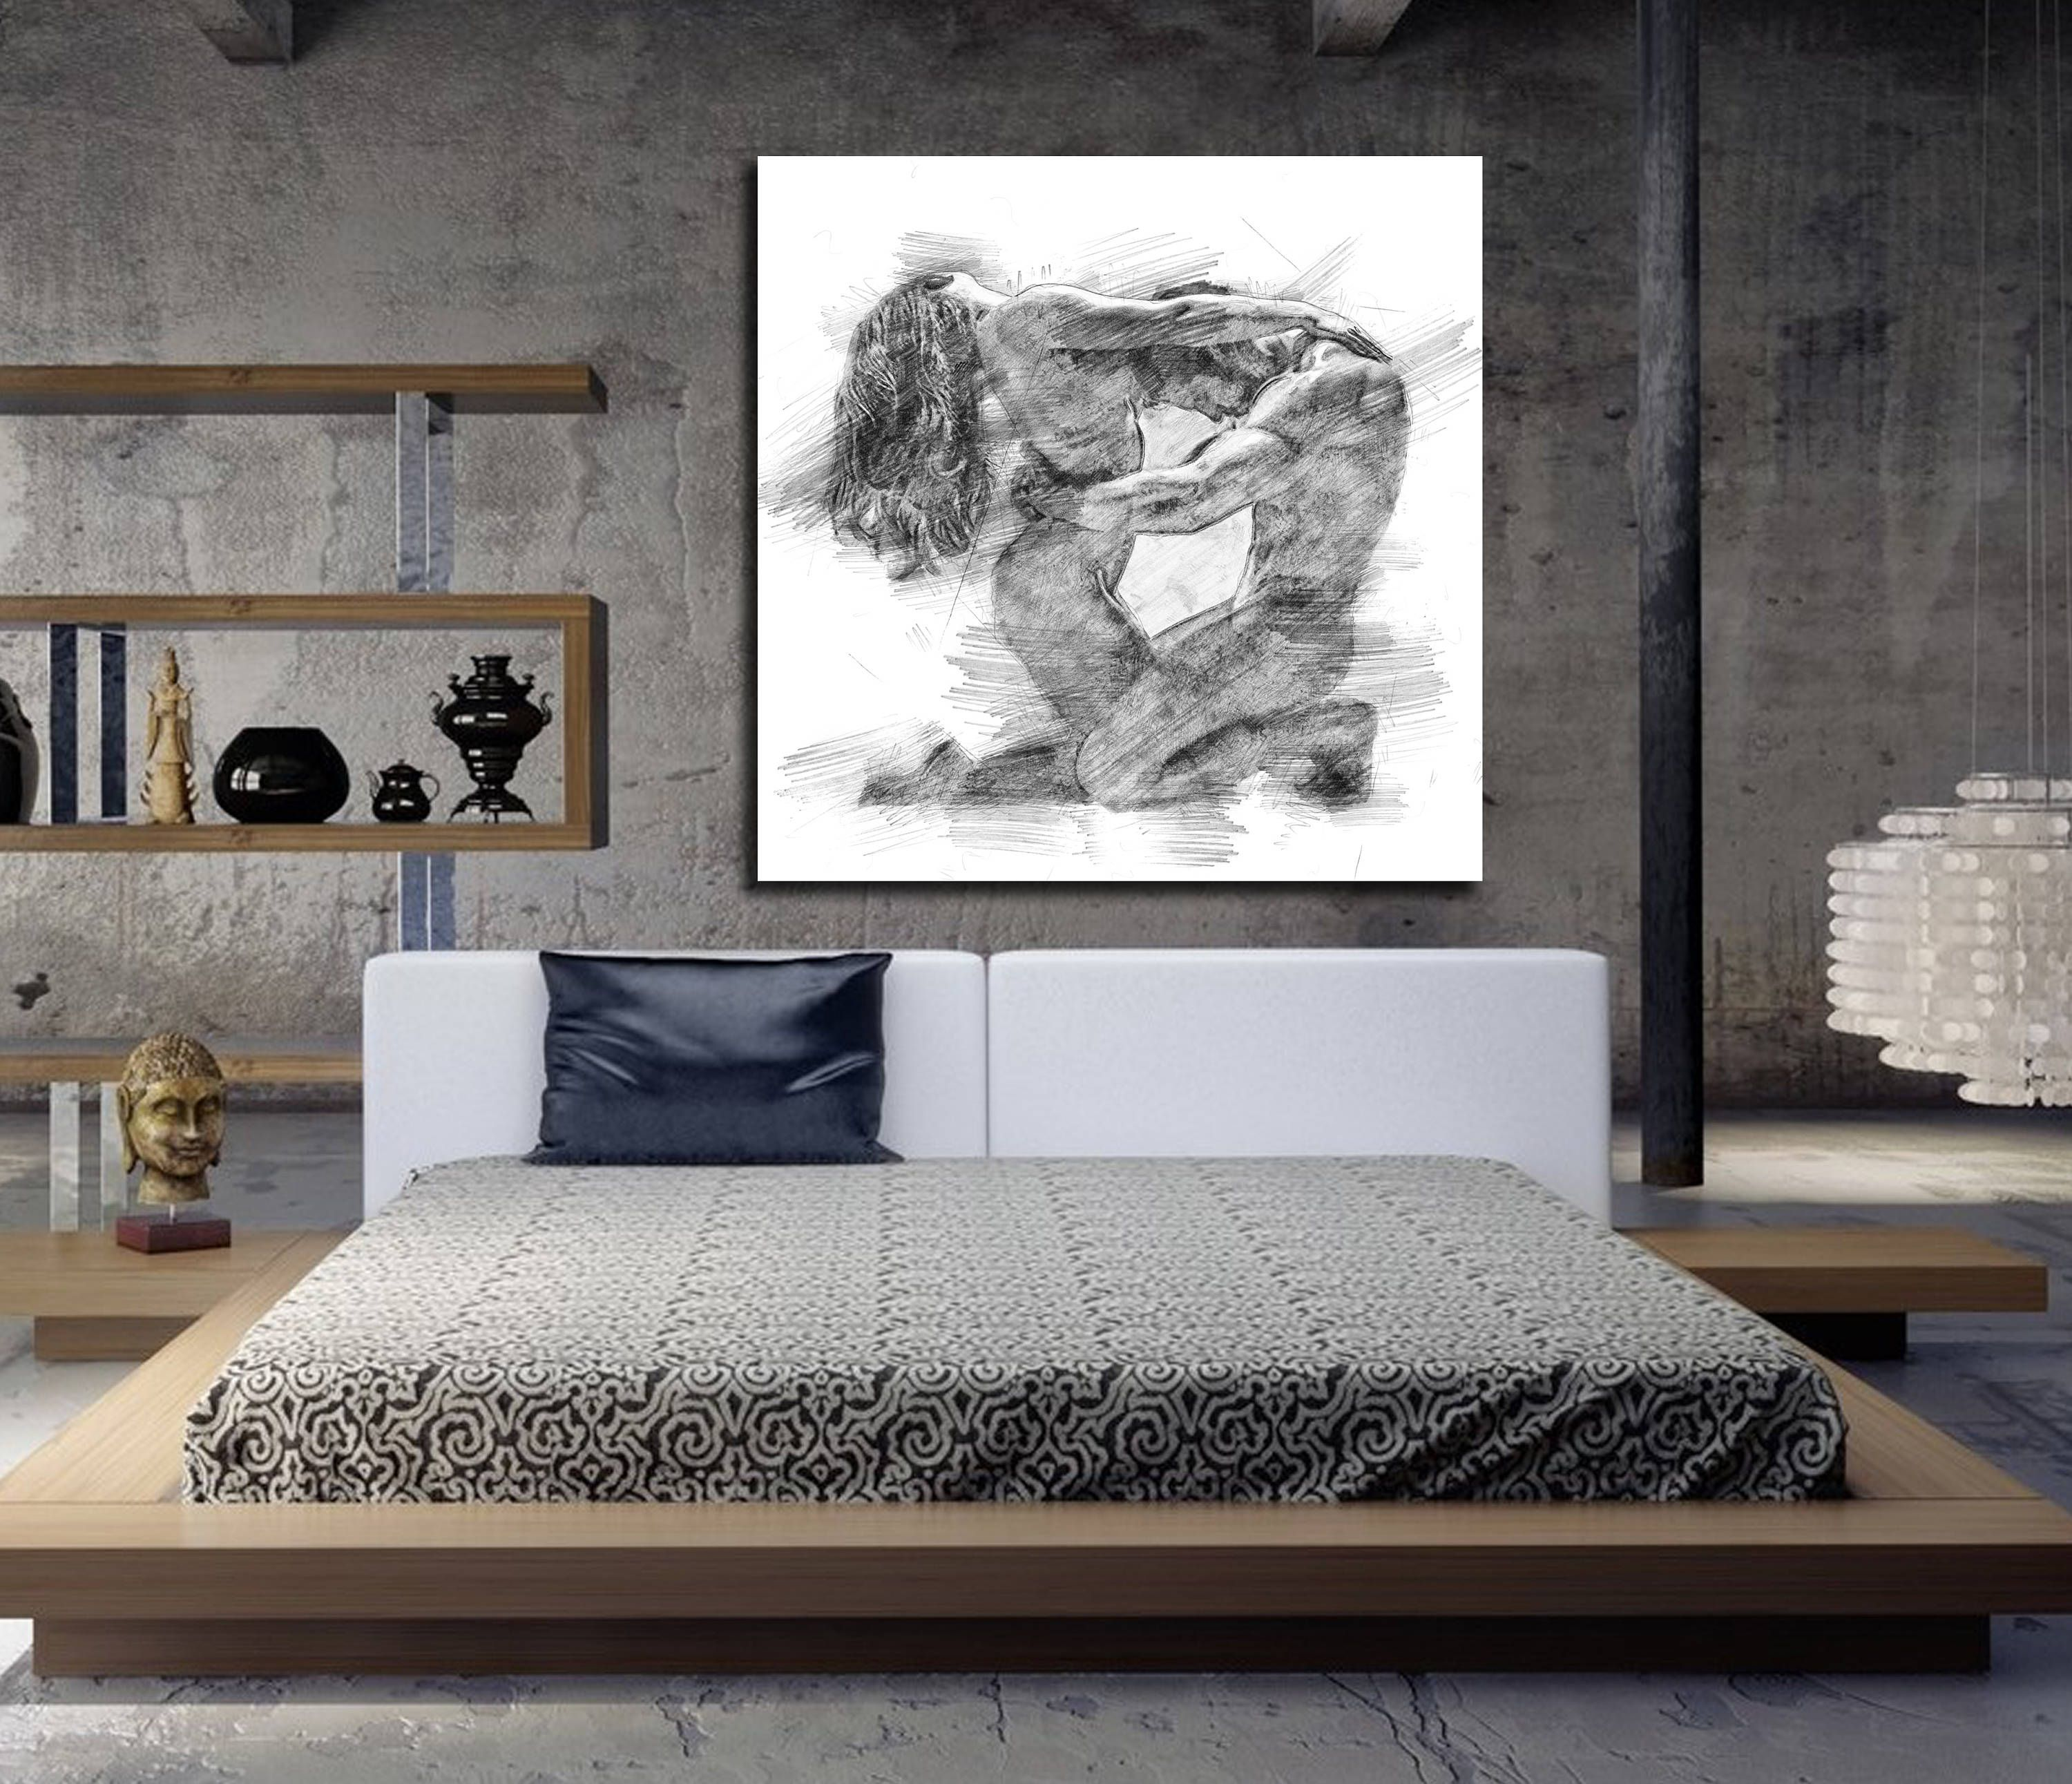 Feng Shui Art Over Bed